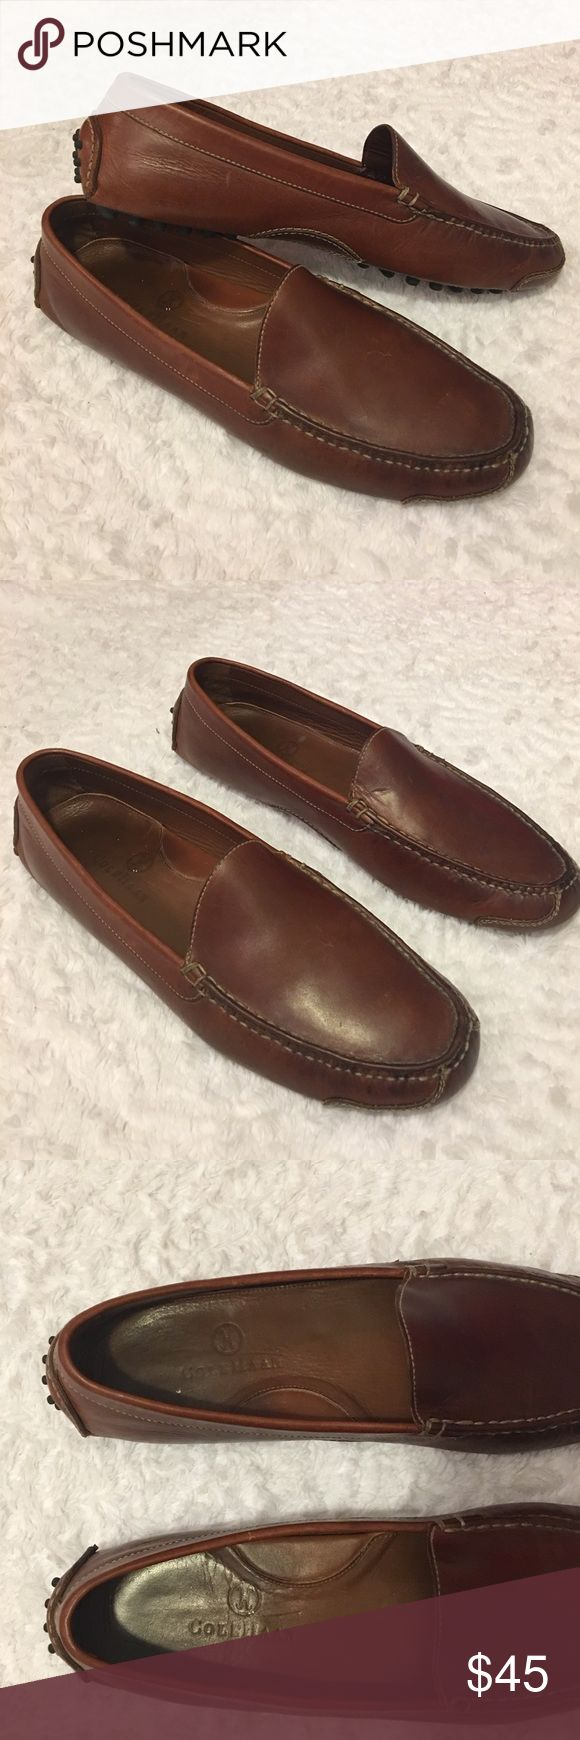 Cole Haan Slip On Loafers Brown Leather Size 10.5 Cole Haan Slip Ons. Brown Leather. Men's Size 10.5. Lightly Worn With Light Wear And Tear On Toe Area. Over All Great Pre Owned Condition. Cole Haan Shoes Loafers & Slip-Ons